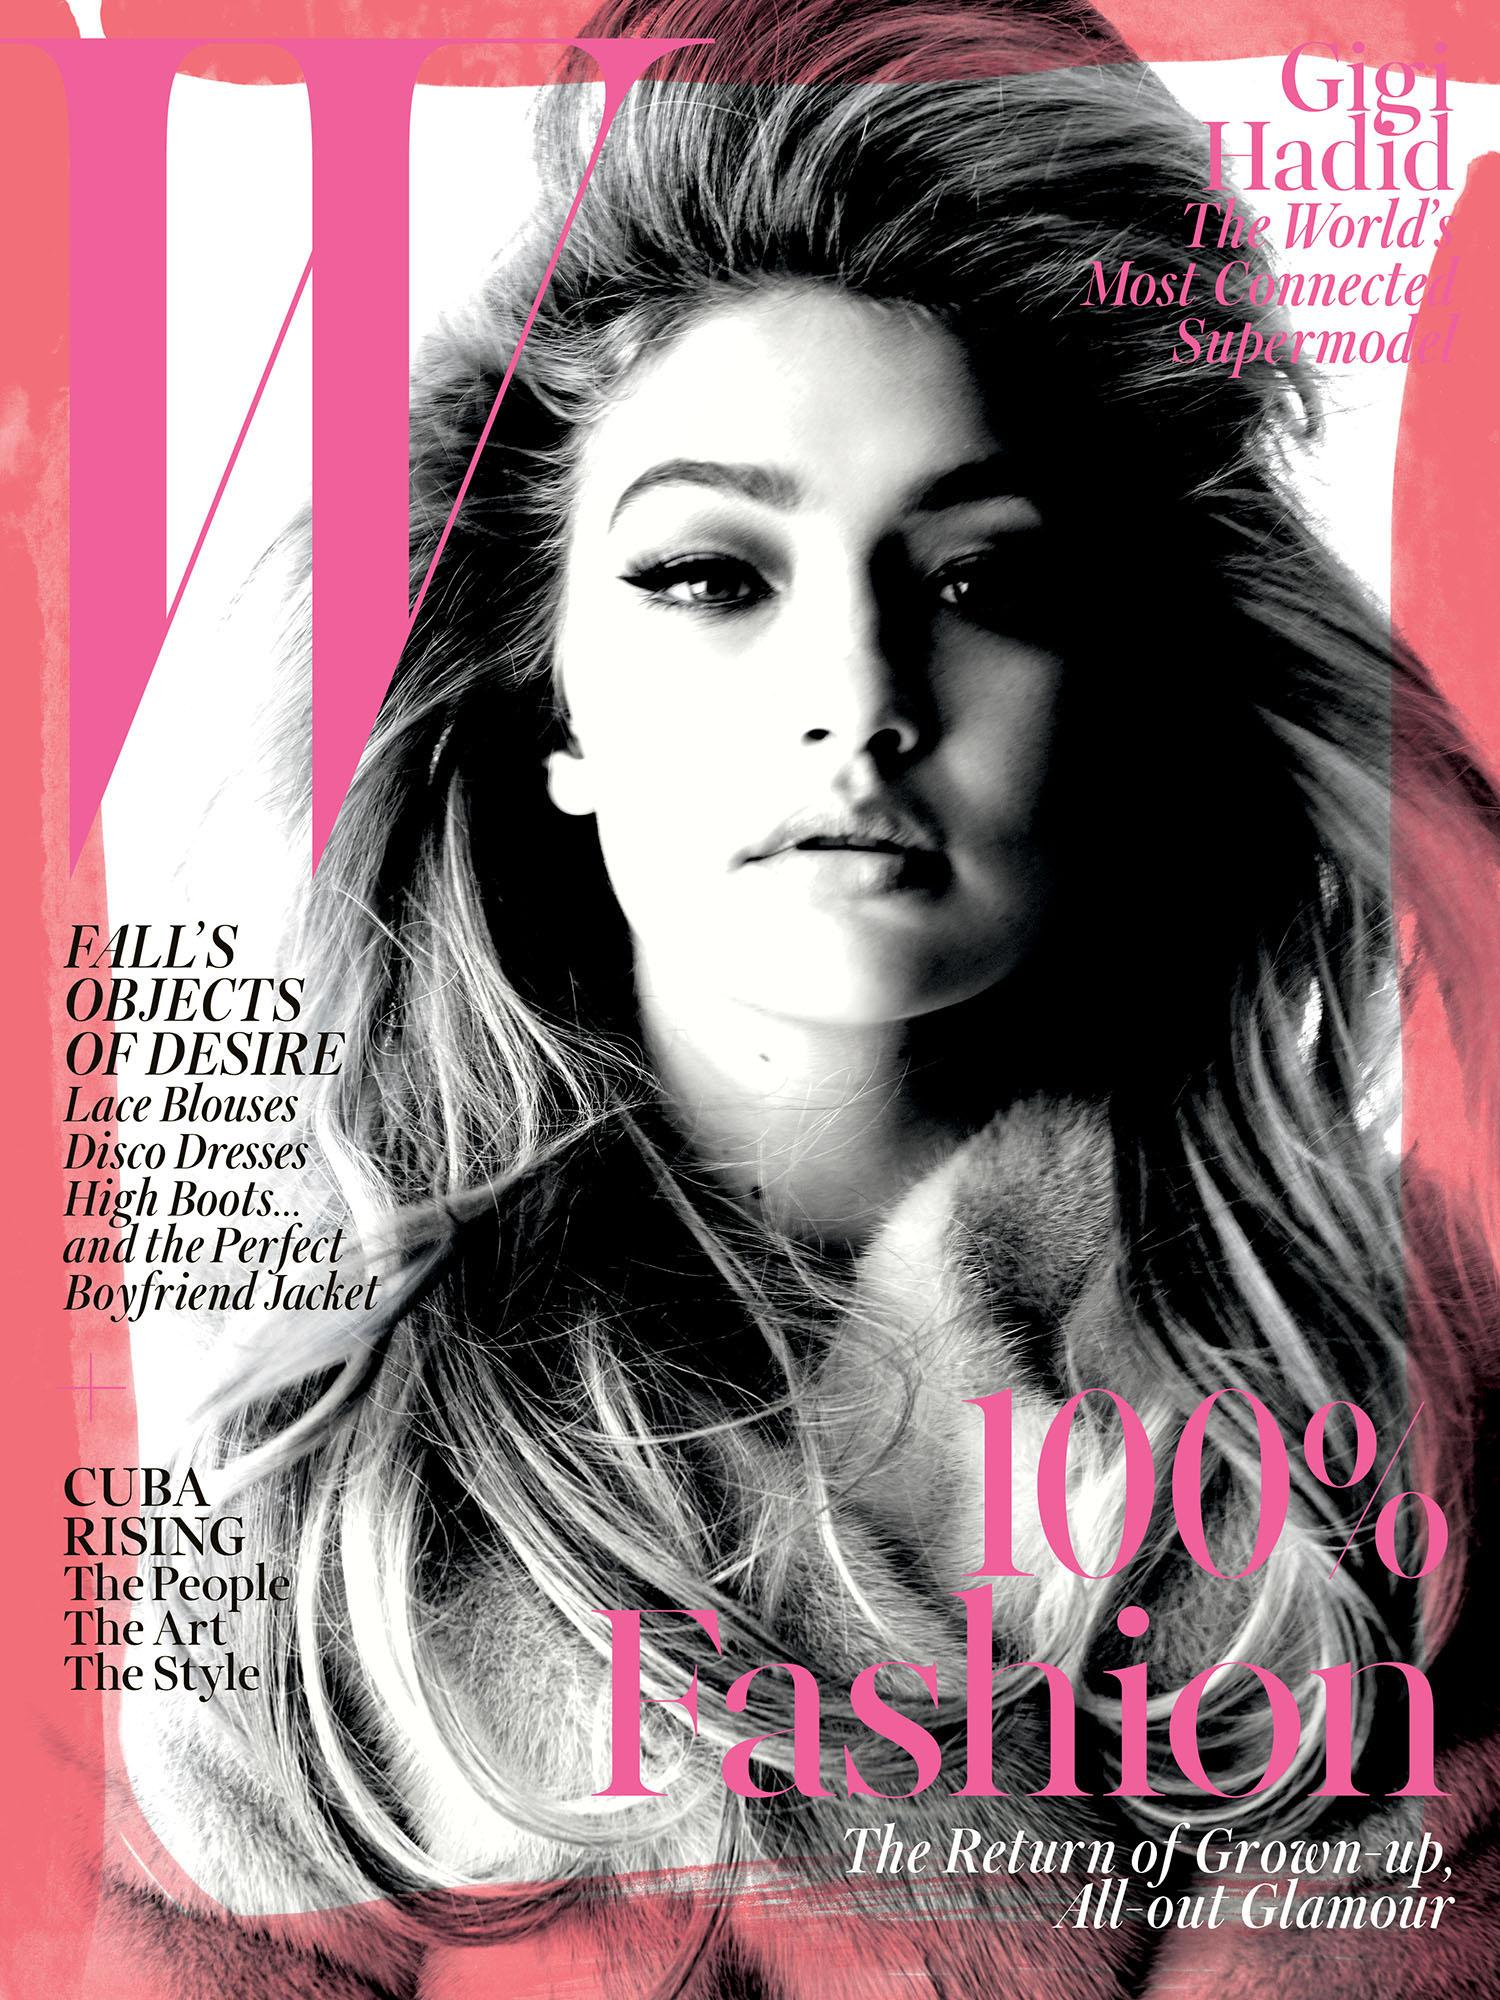 It's here! Get a first look at W's September issue, starring the one and only @GigiHadid: http://t.co/K7k1nqpiCt http://t.co/Vy9Gdwd5Iy